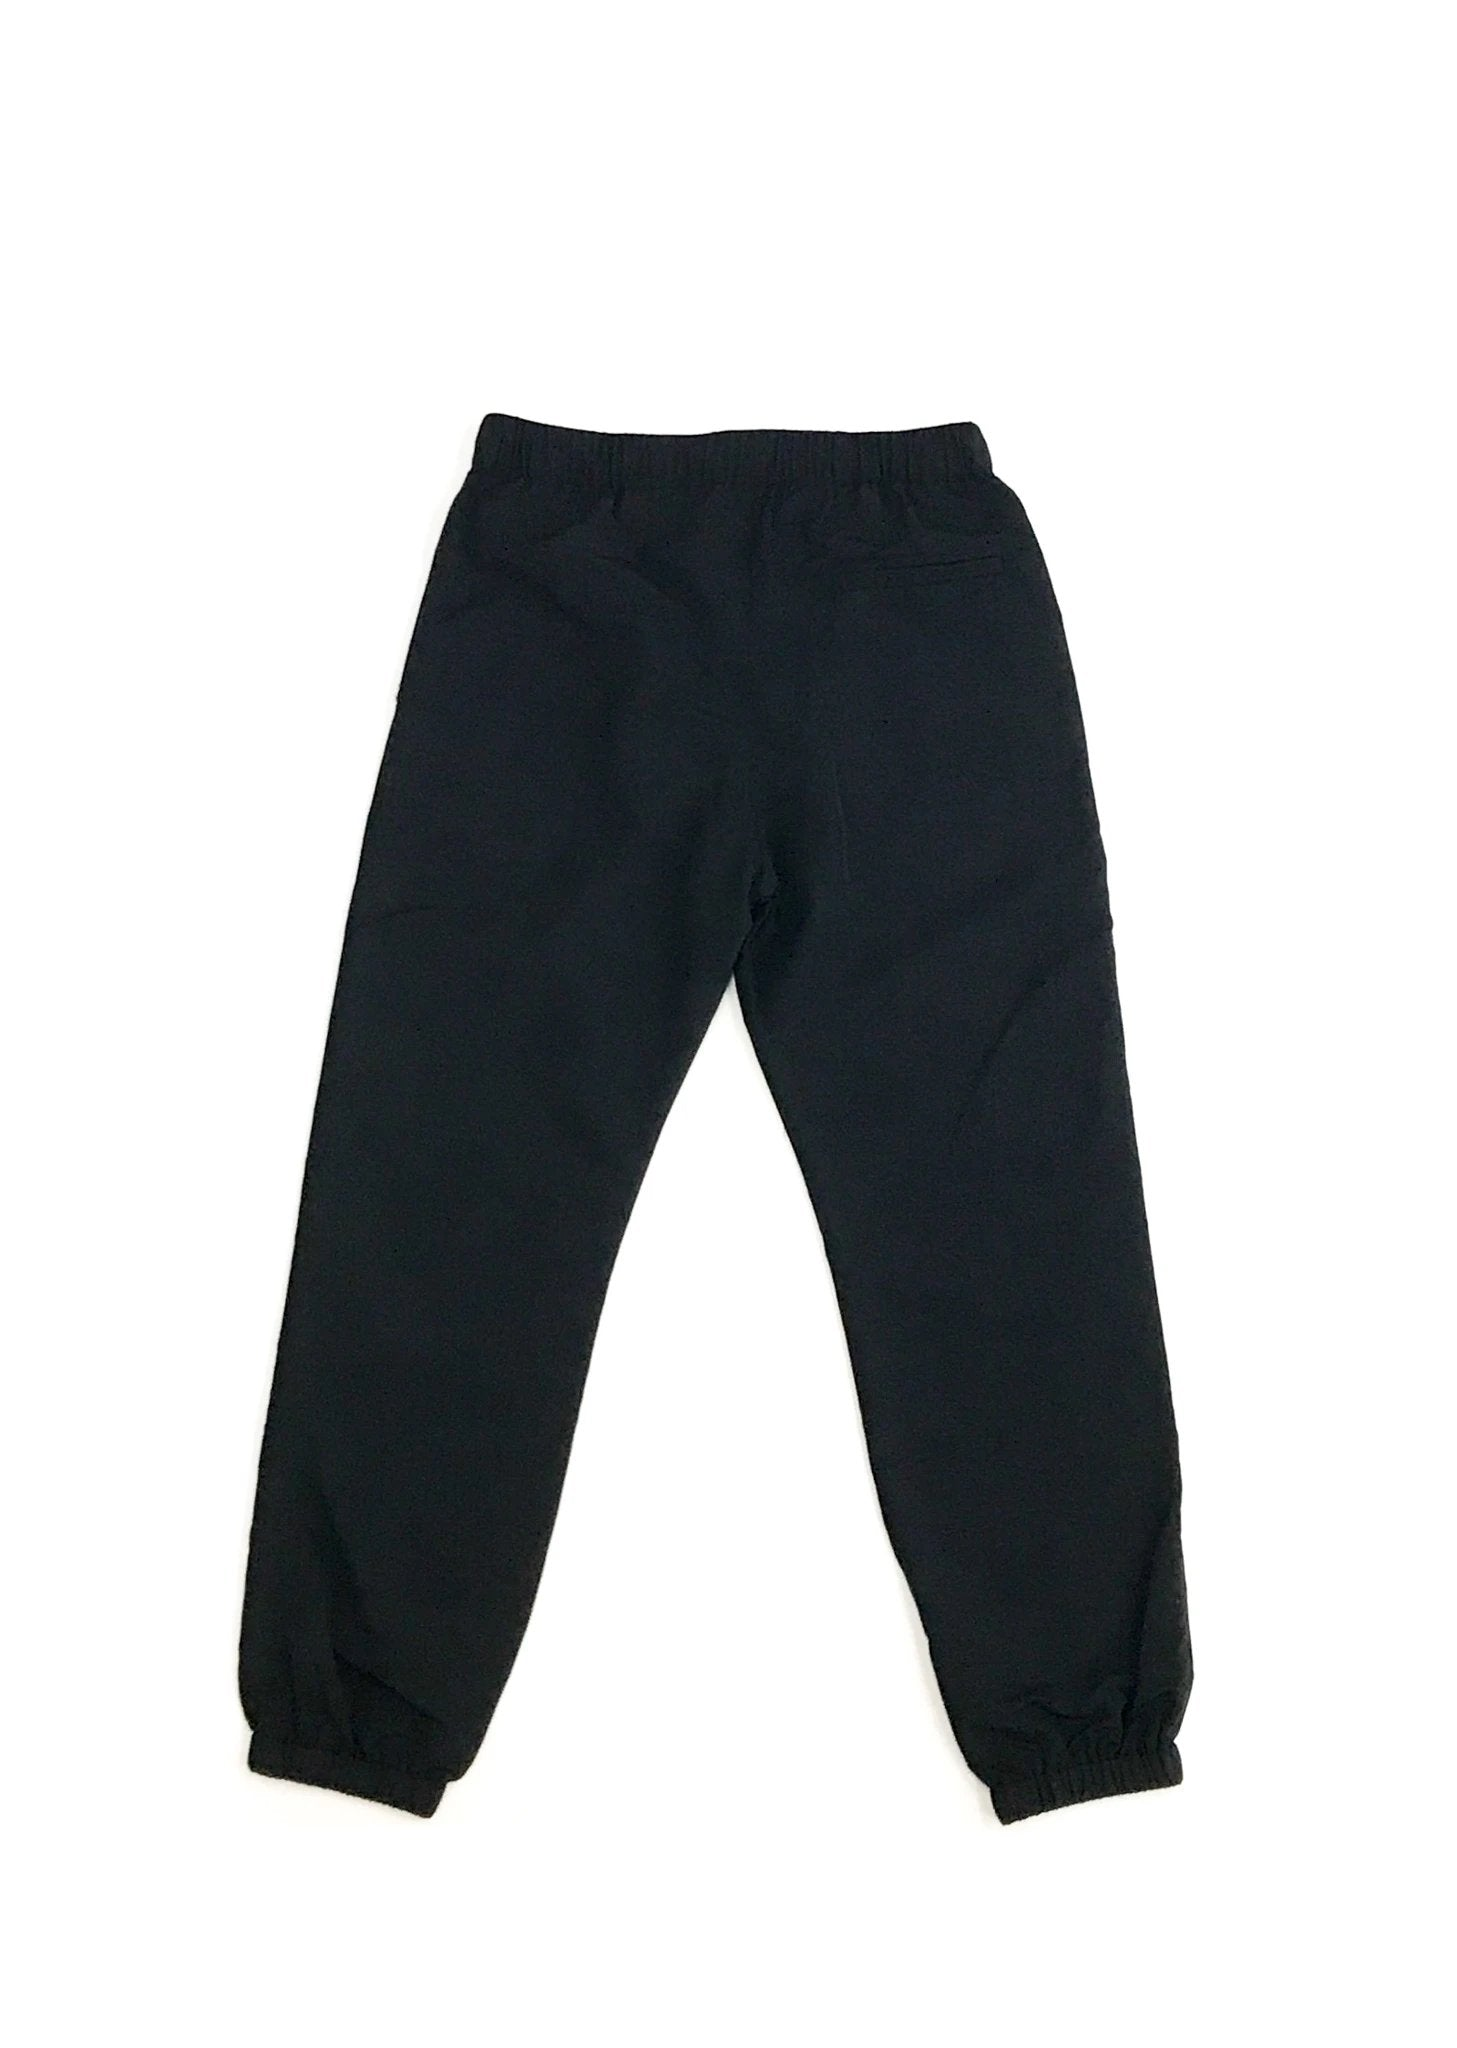 GREI new york (グレイ) / TRACK PANTS 4-PLY DWR FINISH BLACK。バック画像。